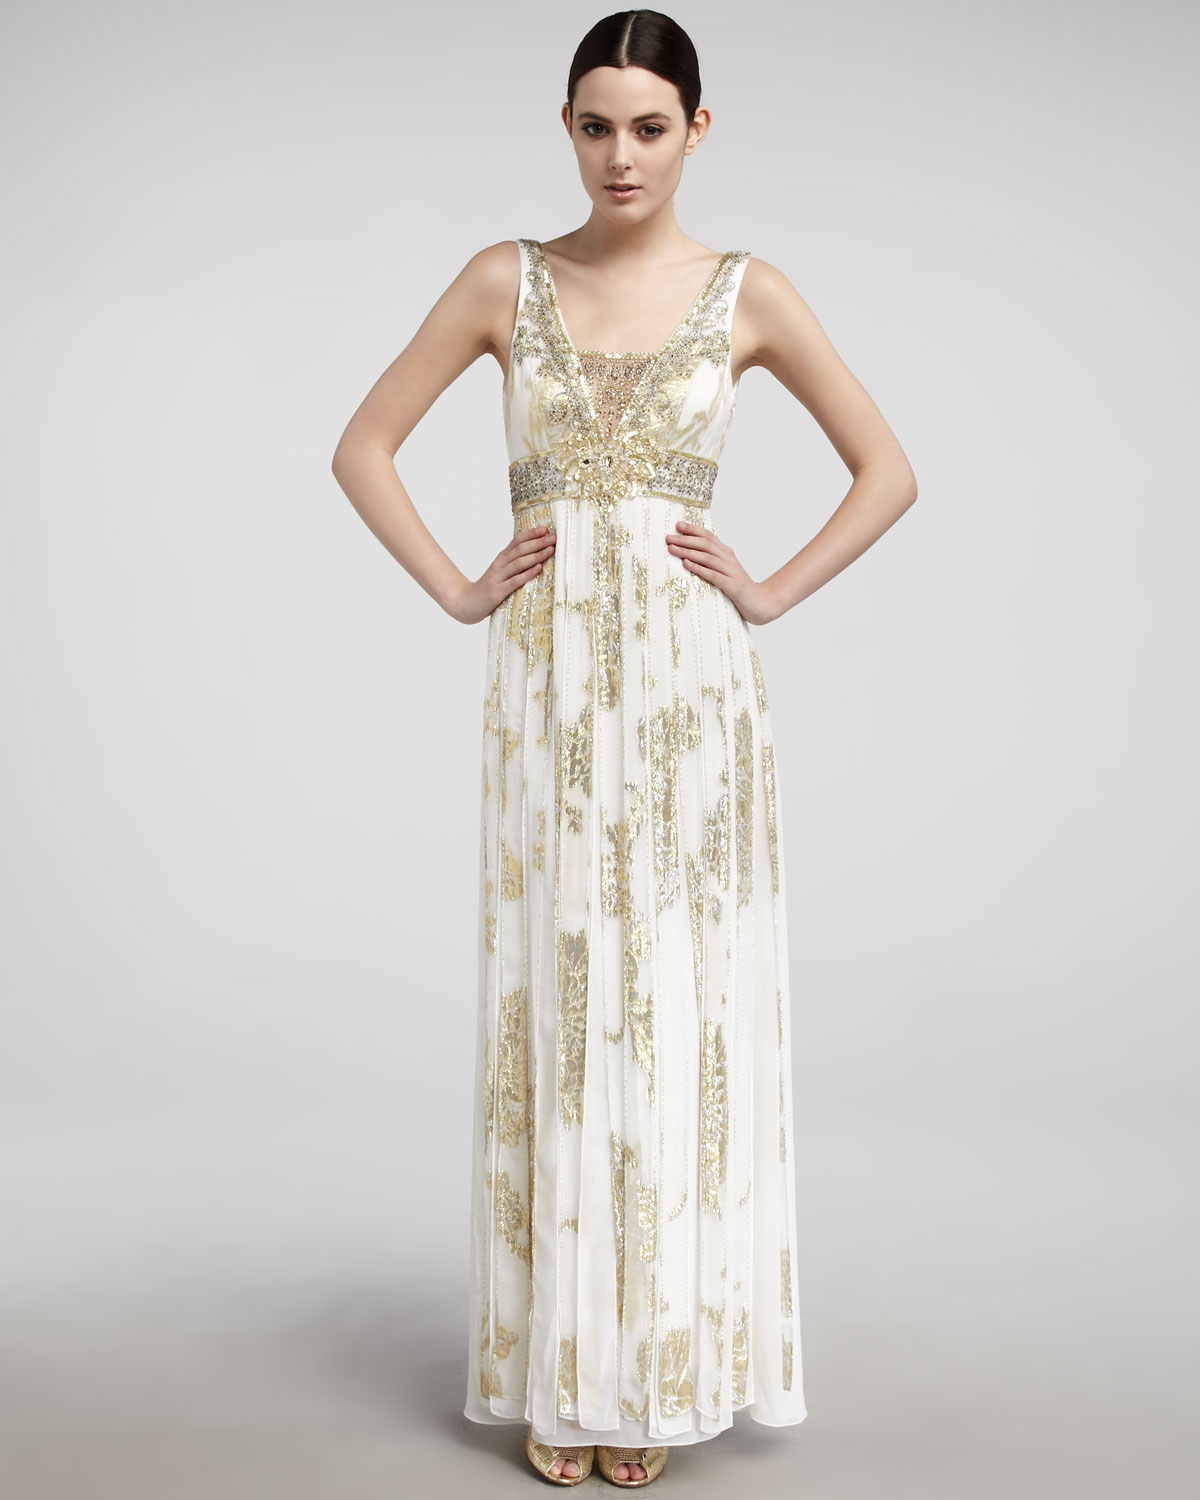 Metallic Ivory Dress